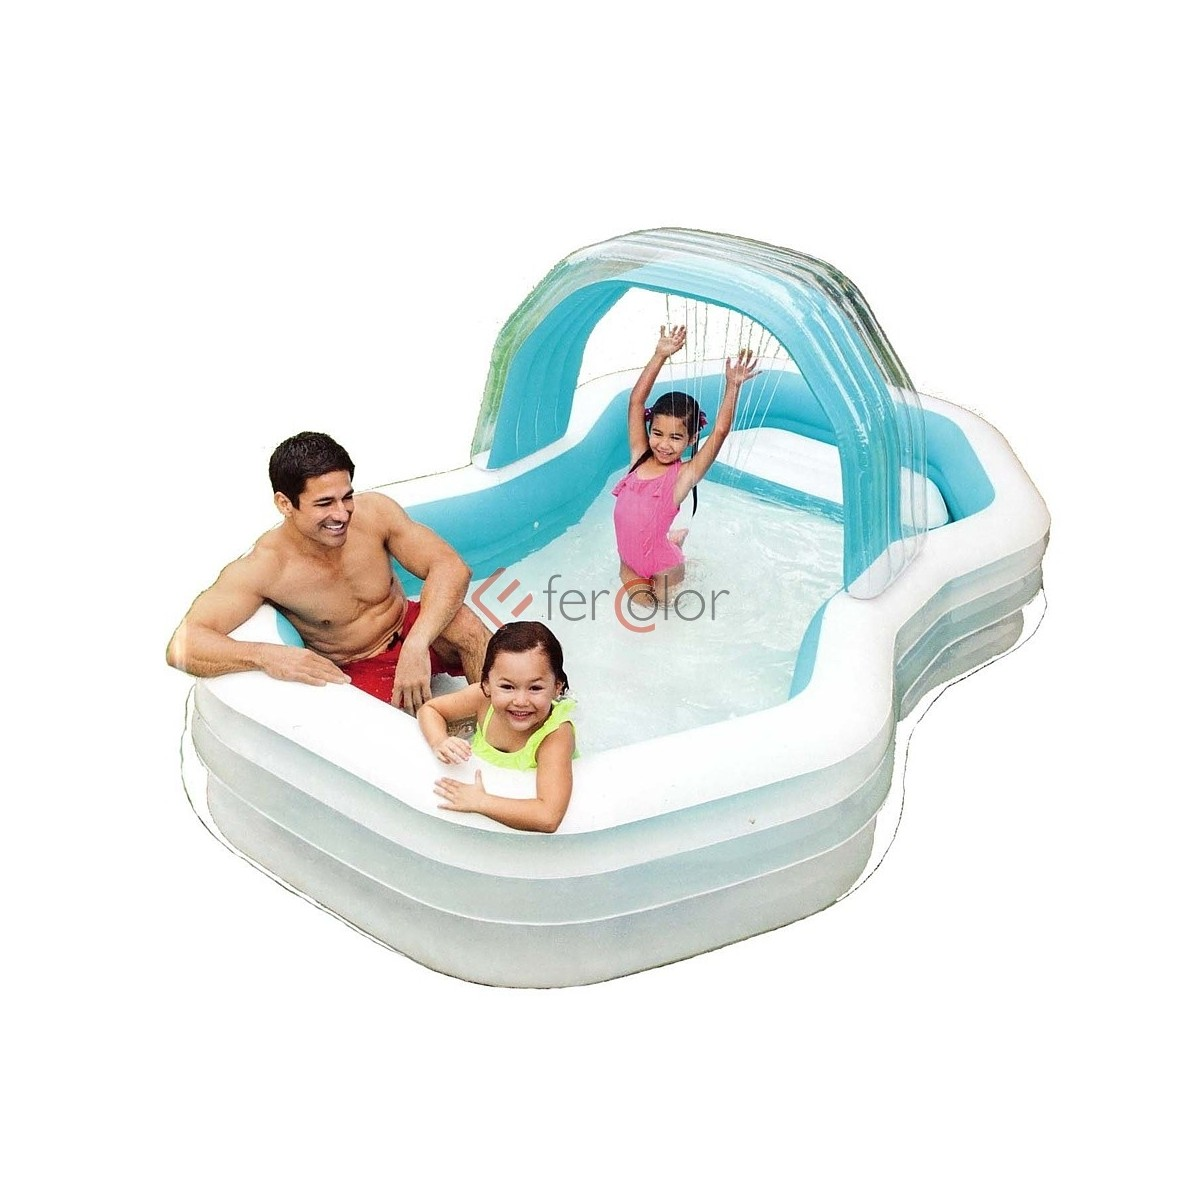 Intex Piscina Gonfiabile Piscina Gonfiabile Intex Family Cabana Swim Center Art